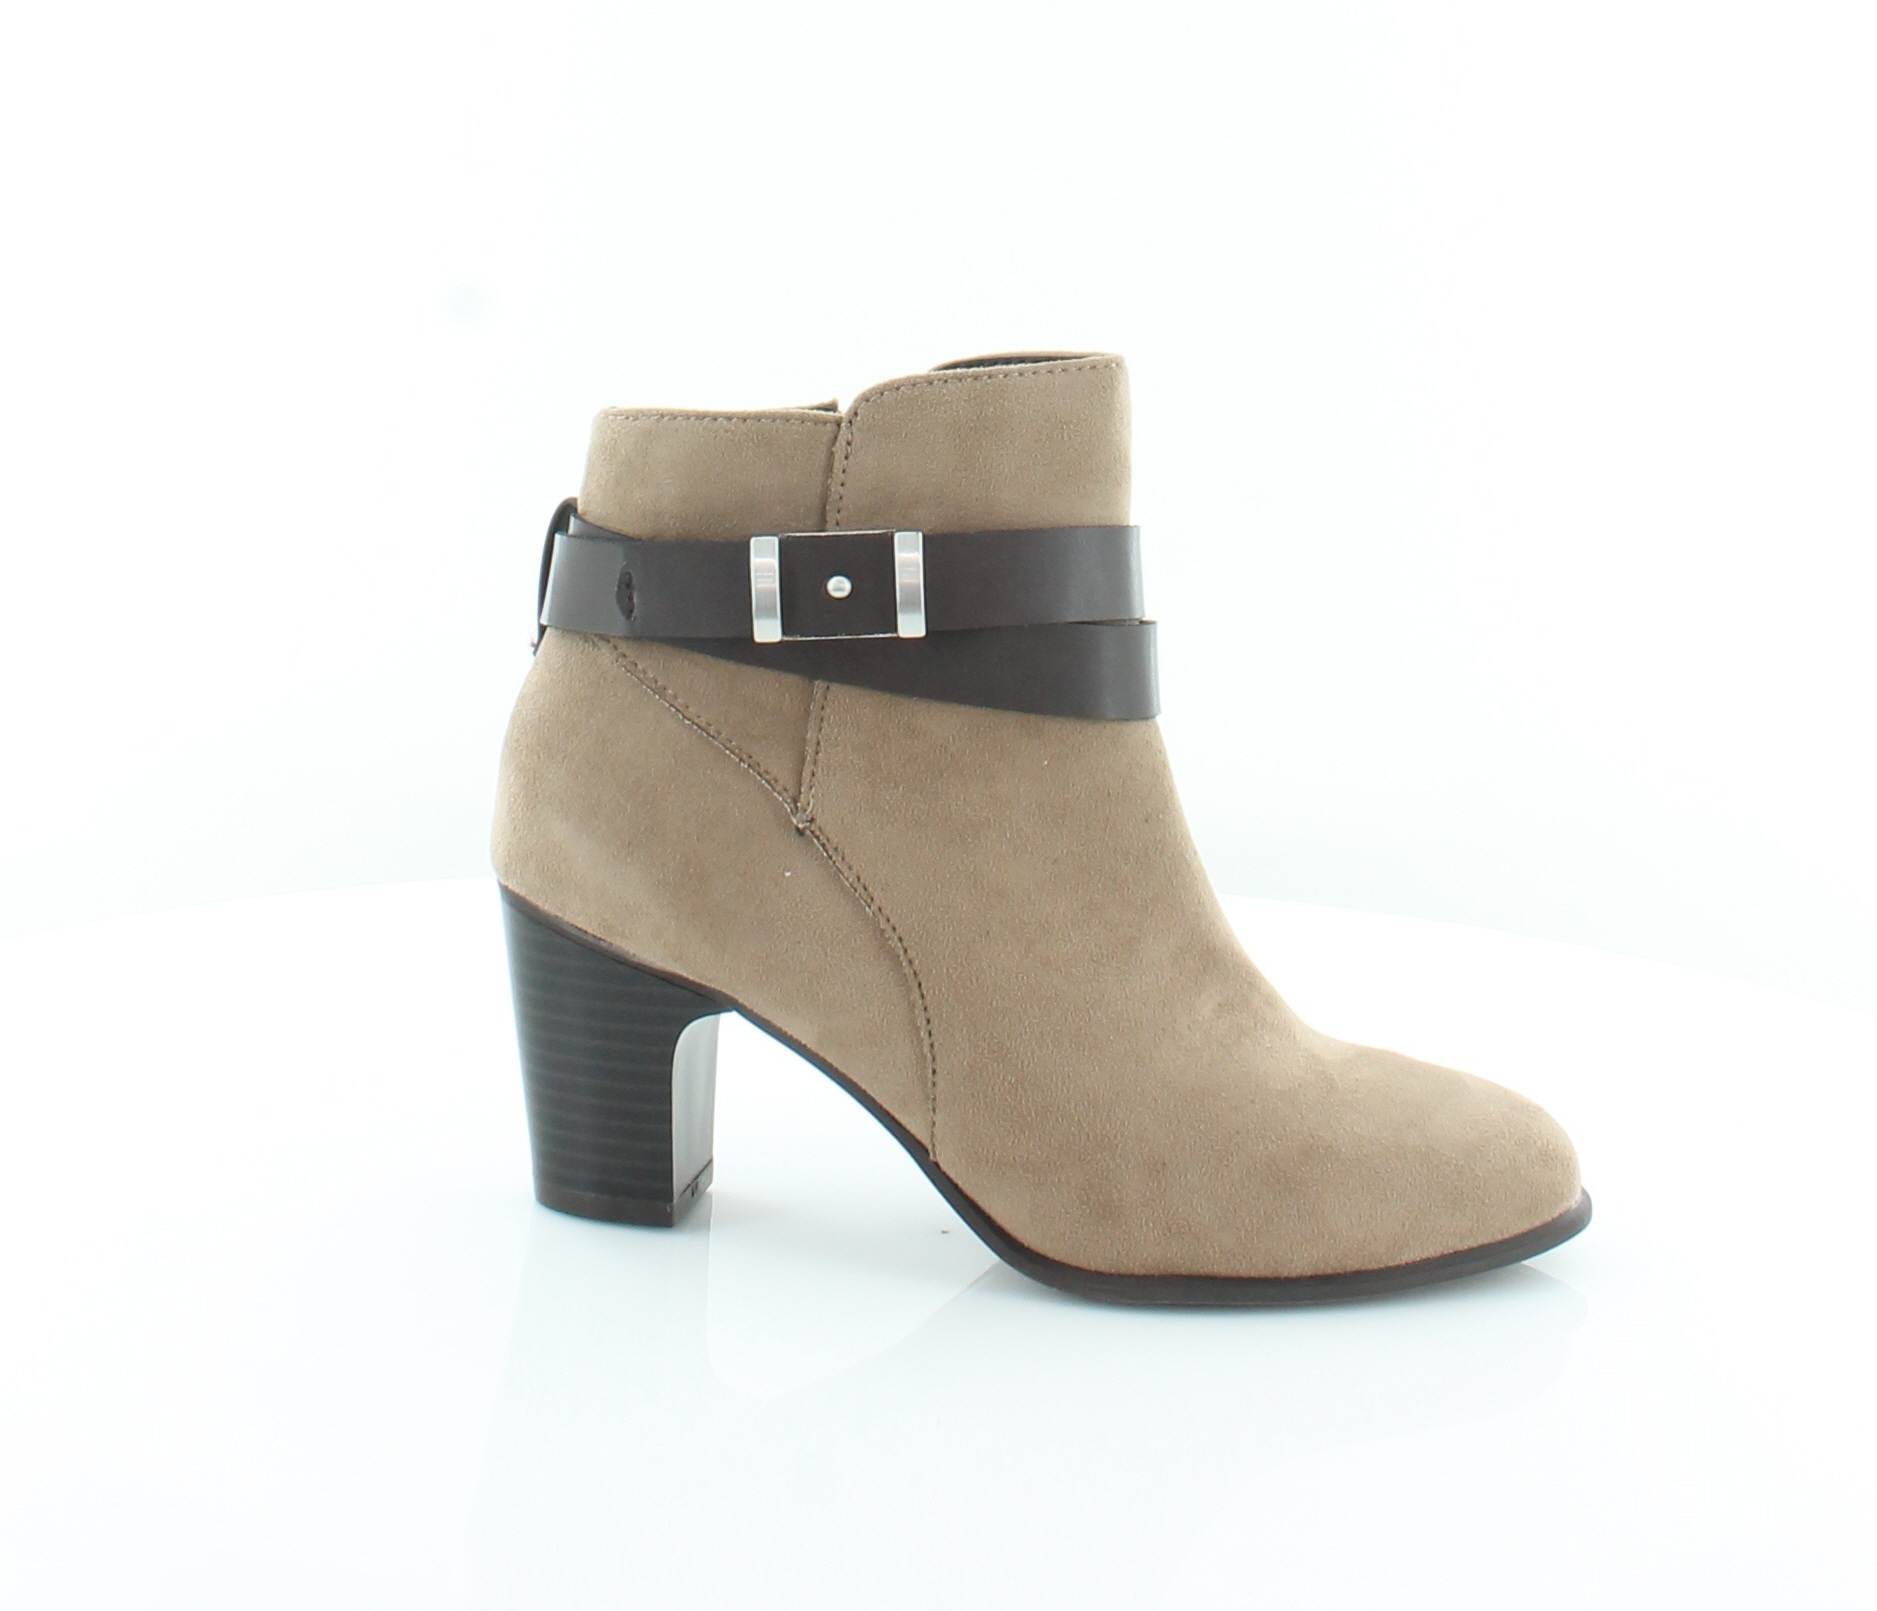 Giani Bernini New Calae Brown Womens shoes Size 6 M Boots MSRP